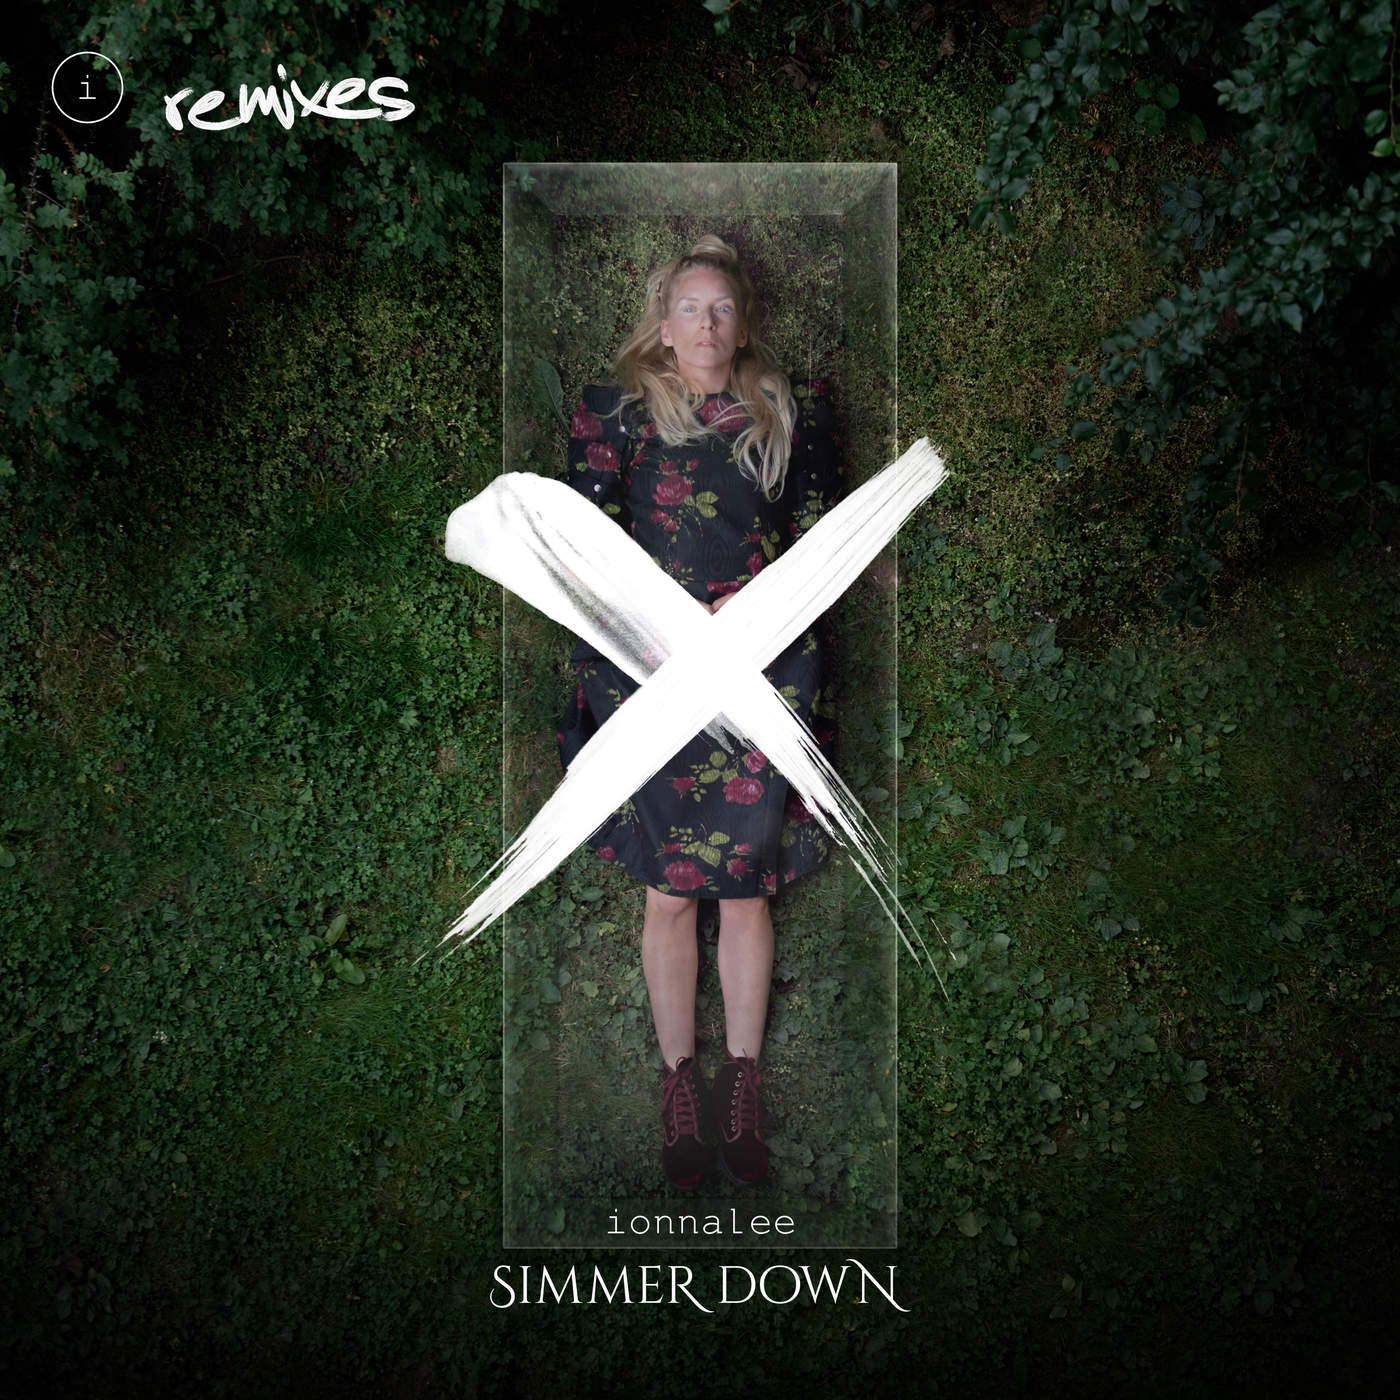 ionnalee - Simmer Down (Remixes) - Single